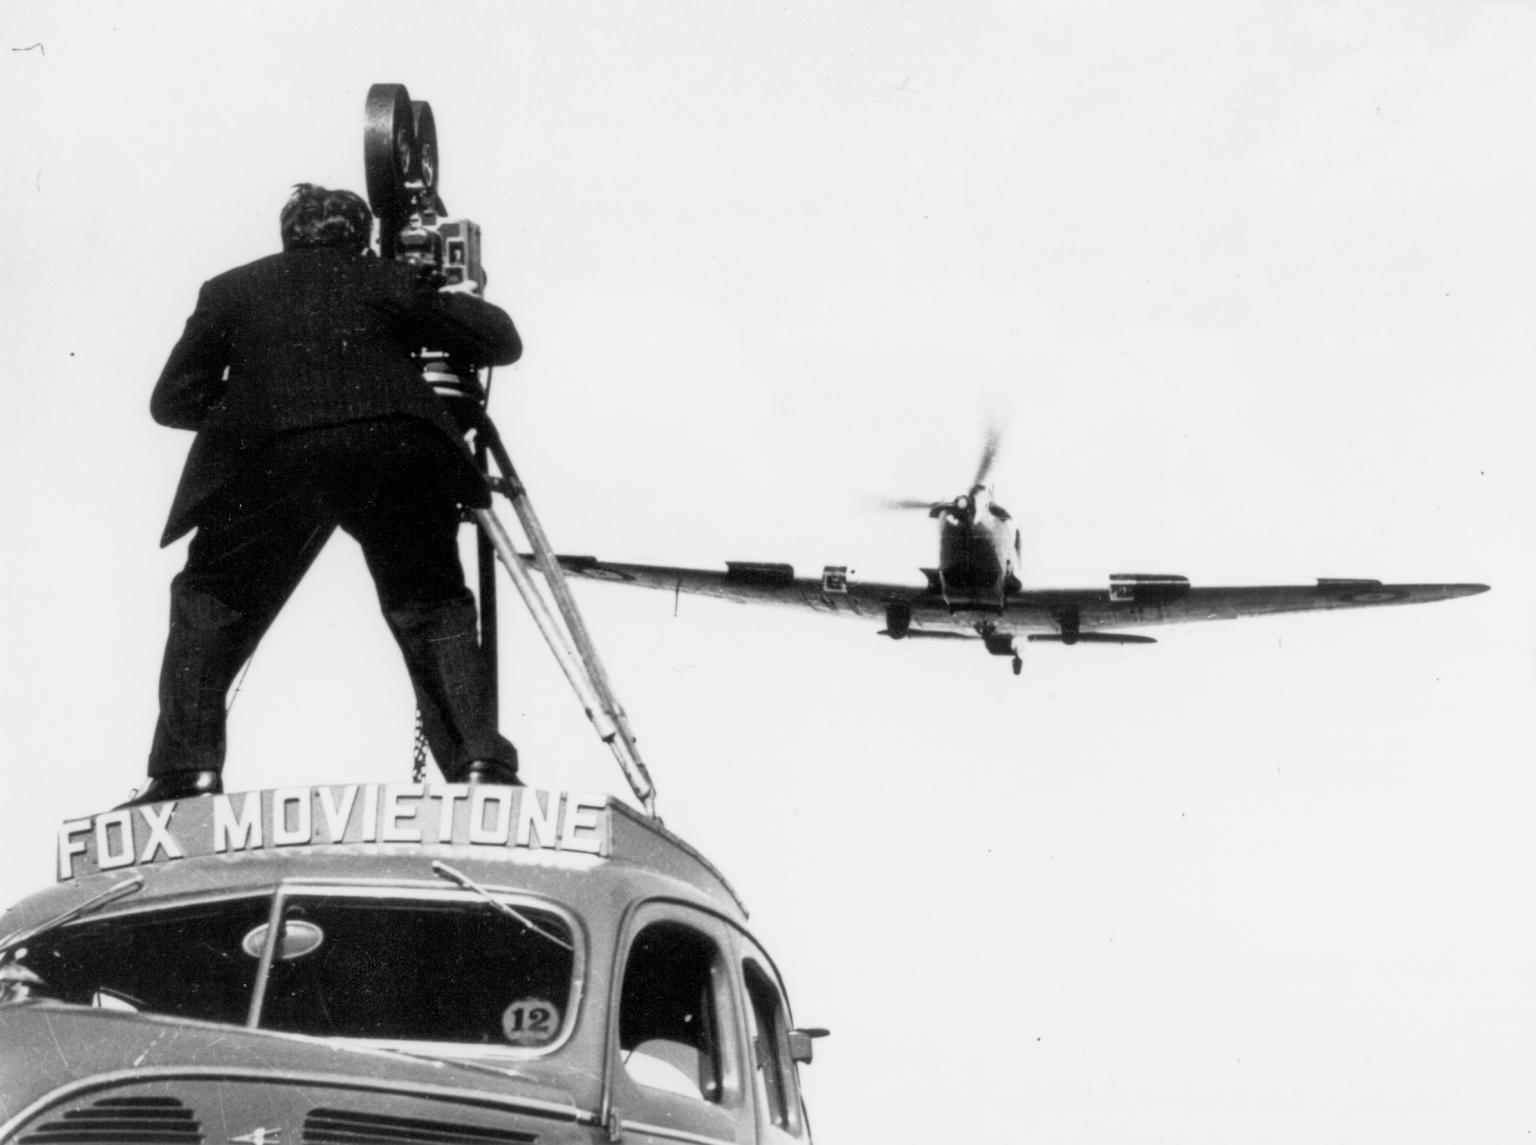 Fox Movietone cameraman standing on a car filming a fighter aircraft flying overhead